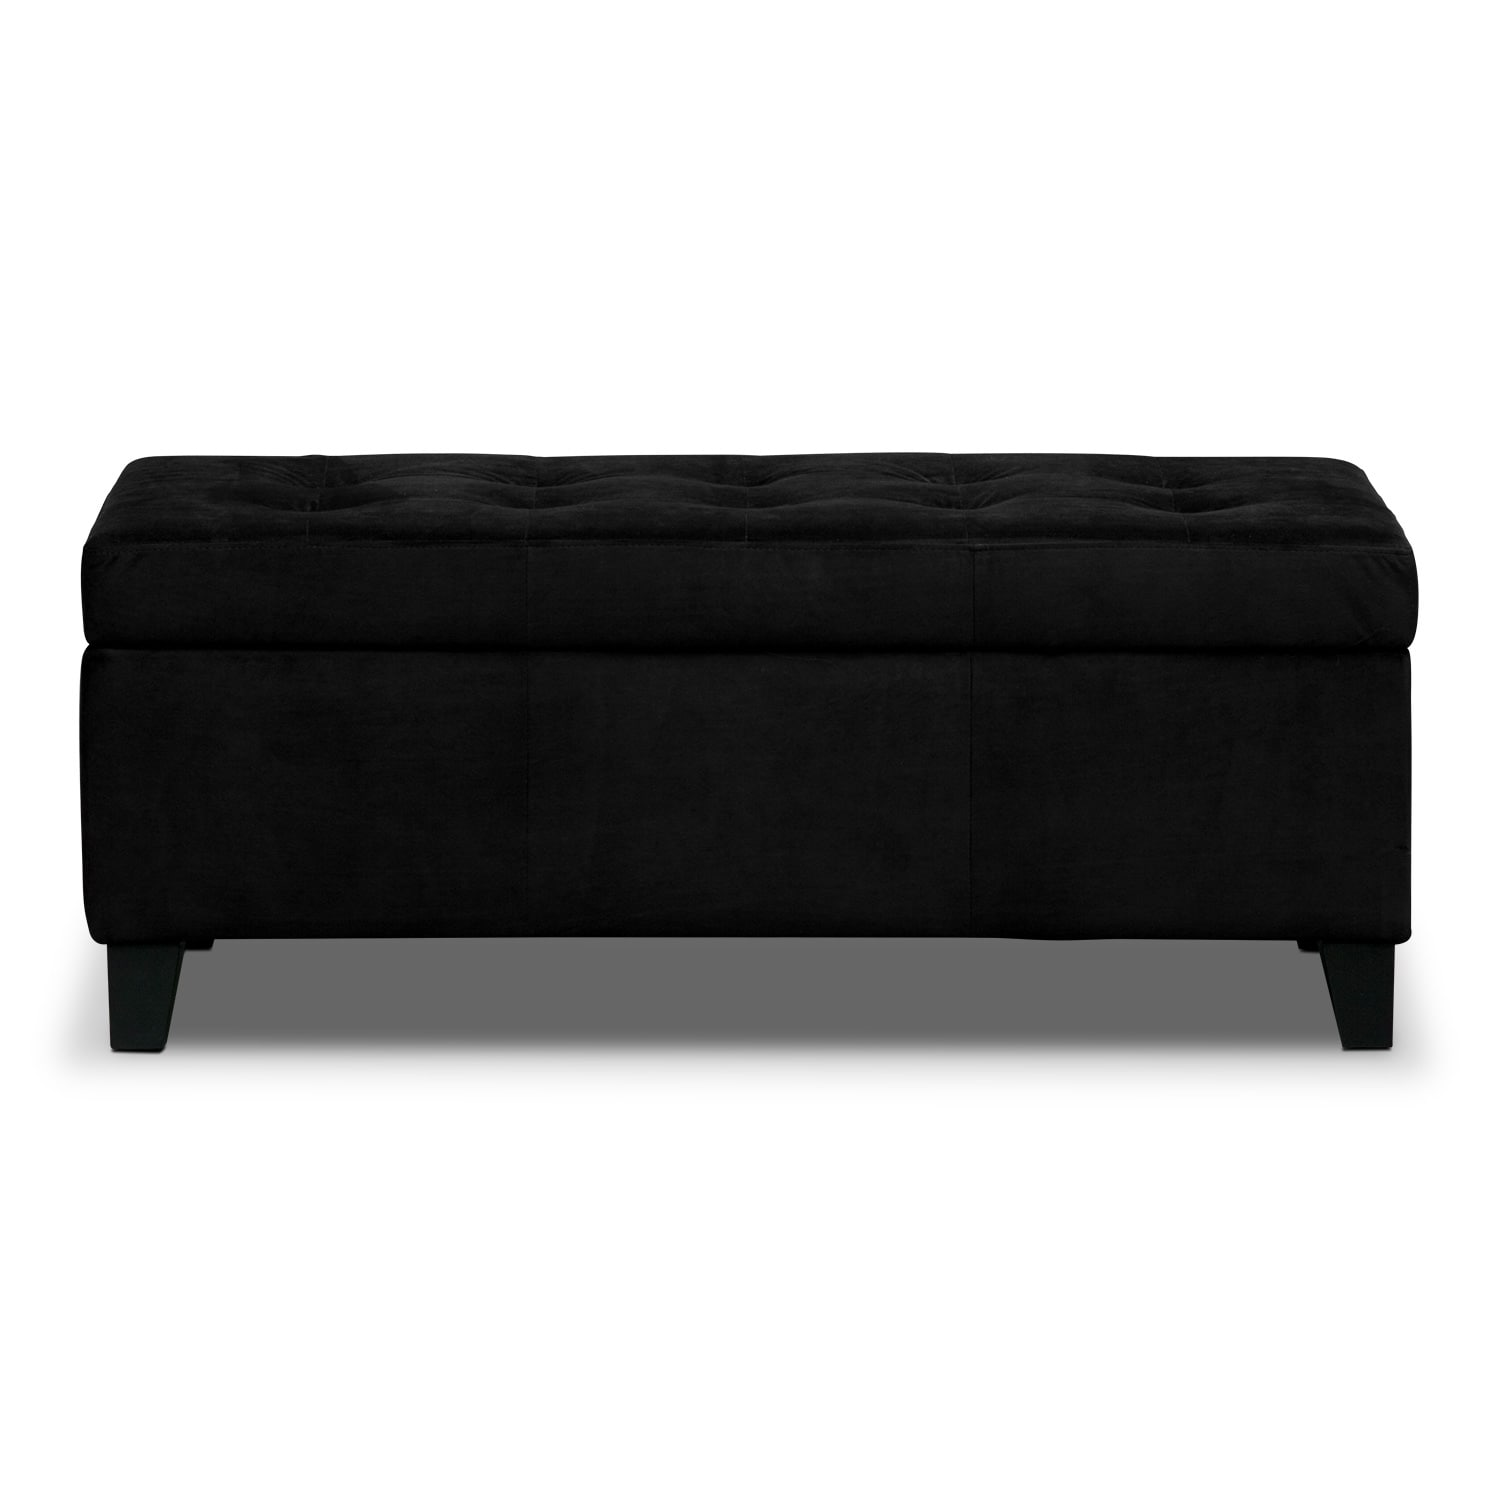 Valerie storage bench black american signature furniture Furniture benches